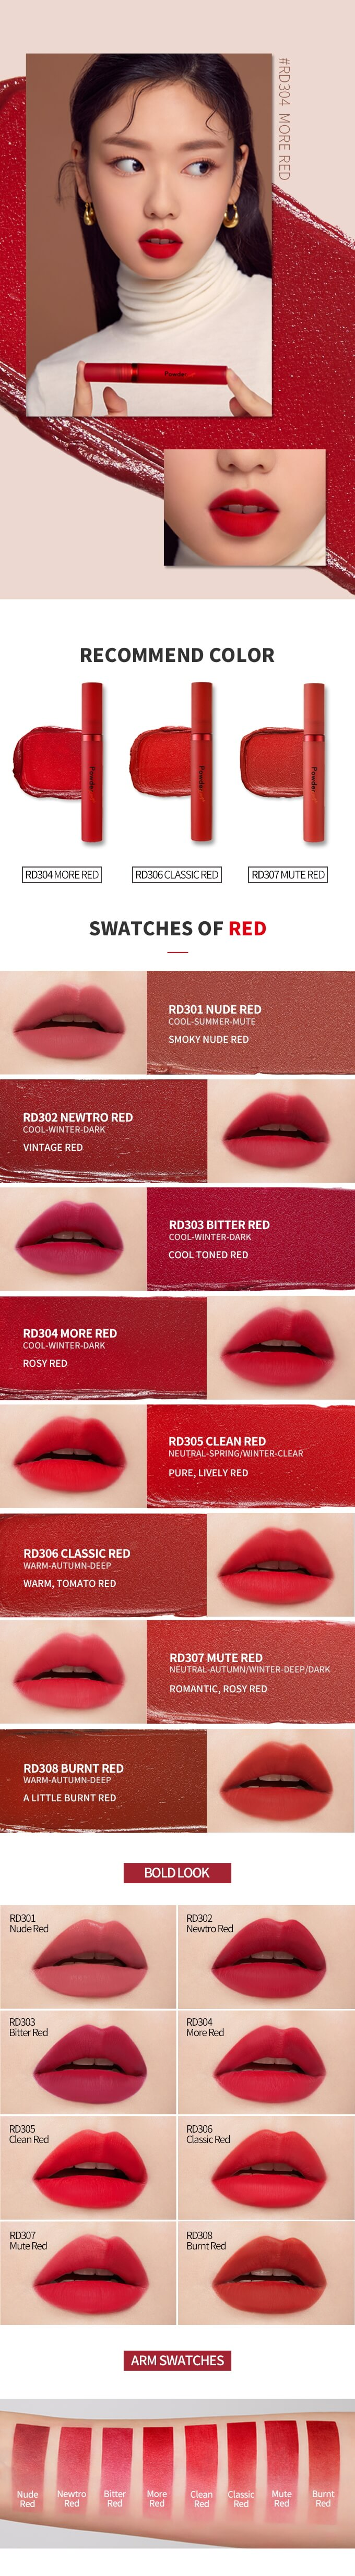 Etude House Powder Rouge Tint [#07 RD307 Mute Red]